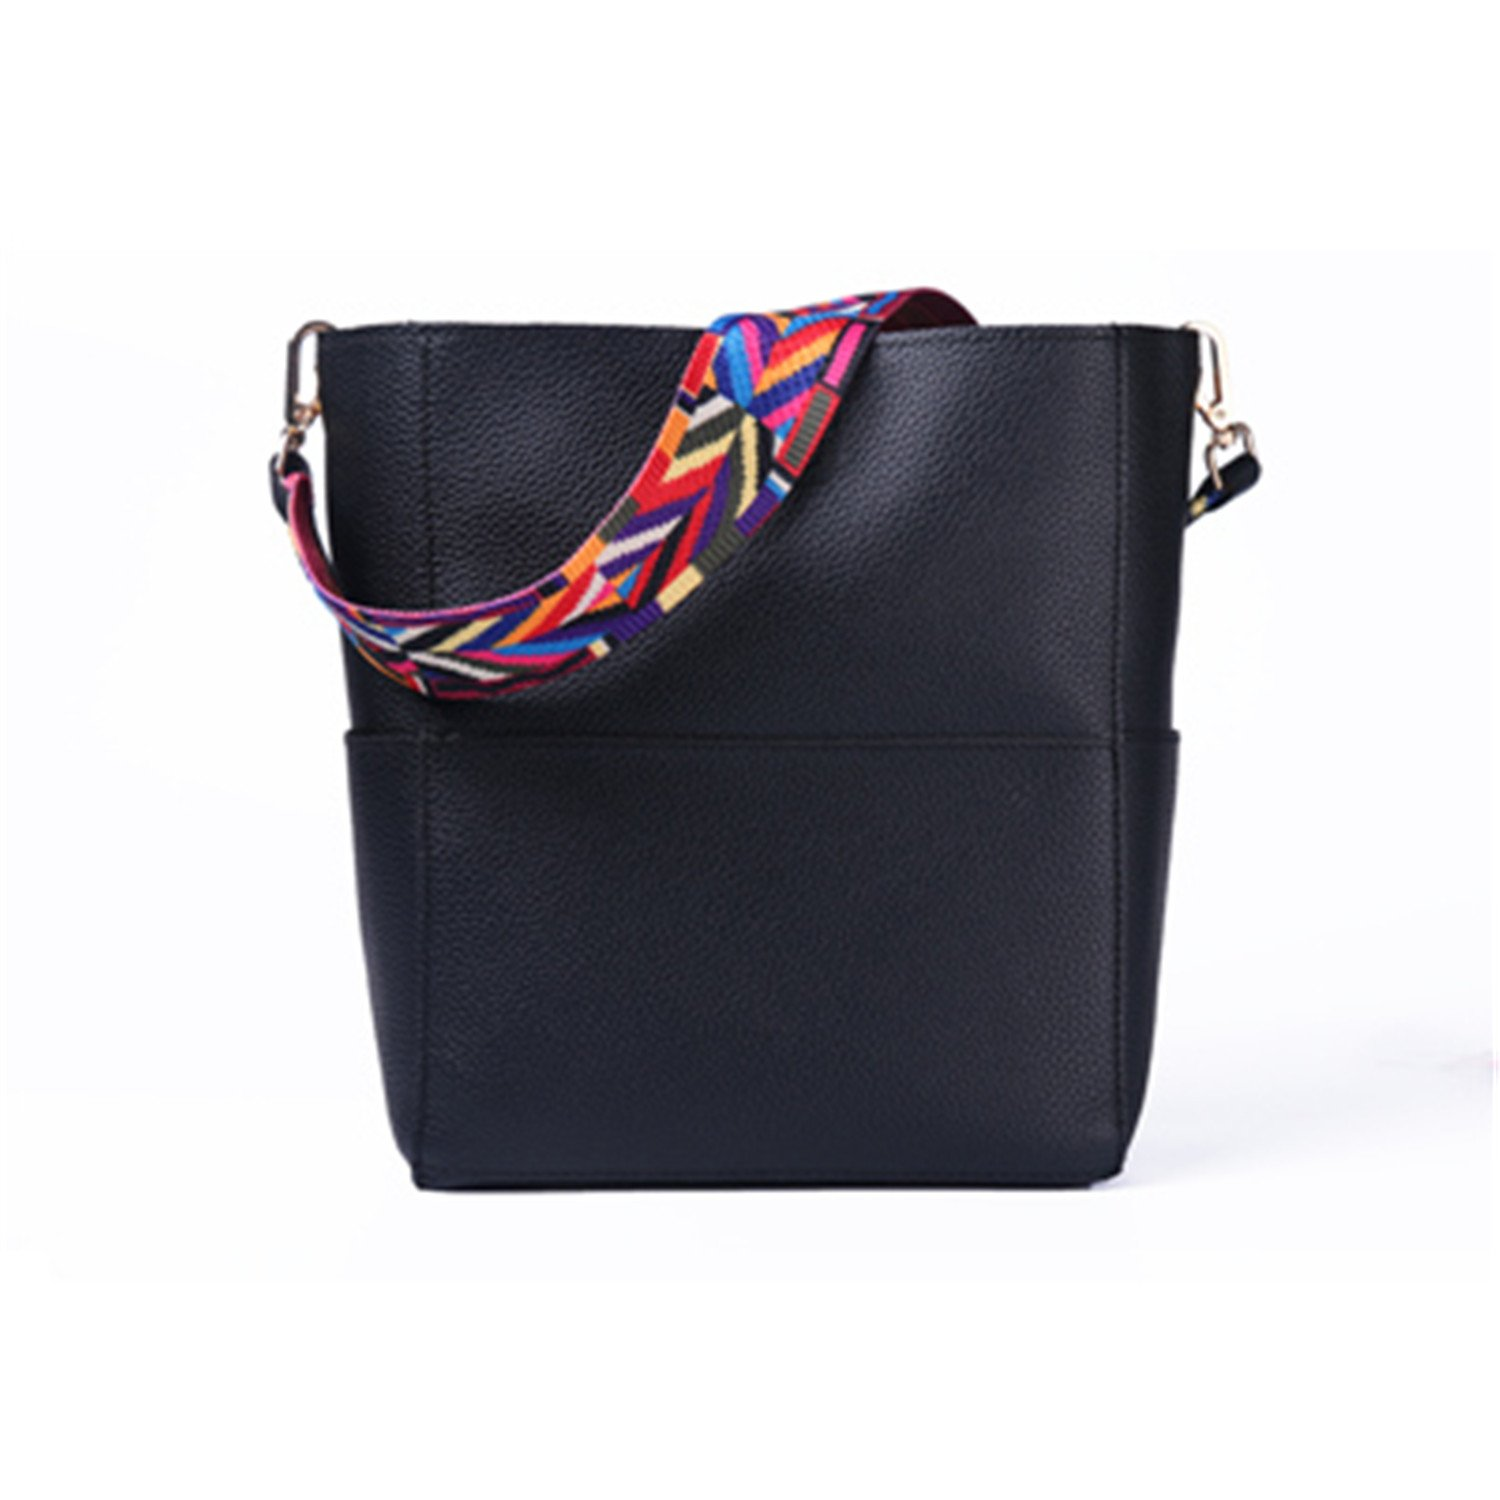 Toping Fine Bucket bag Women Leather Wide Strap Shoulder bag Handbag Large Capacity Crossbody bag Color 5 Black: Handbags: Amazon.com